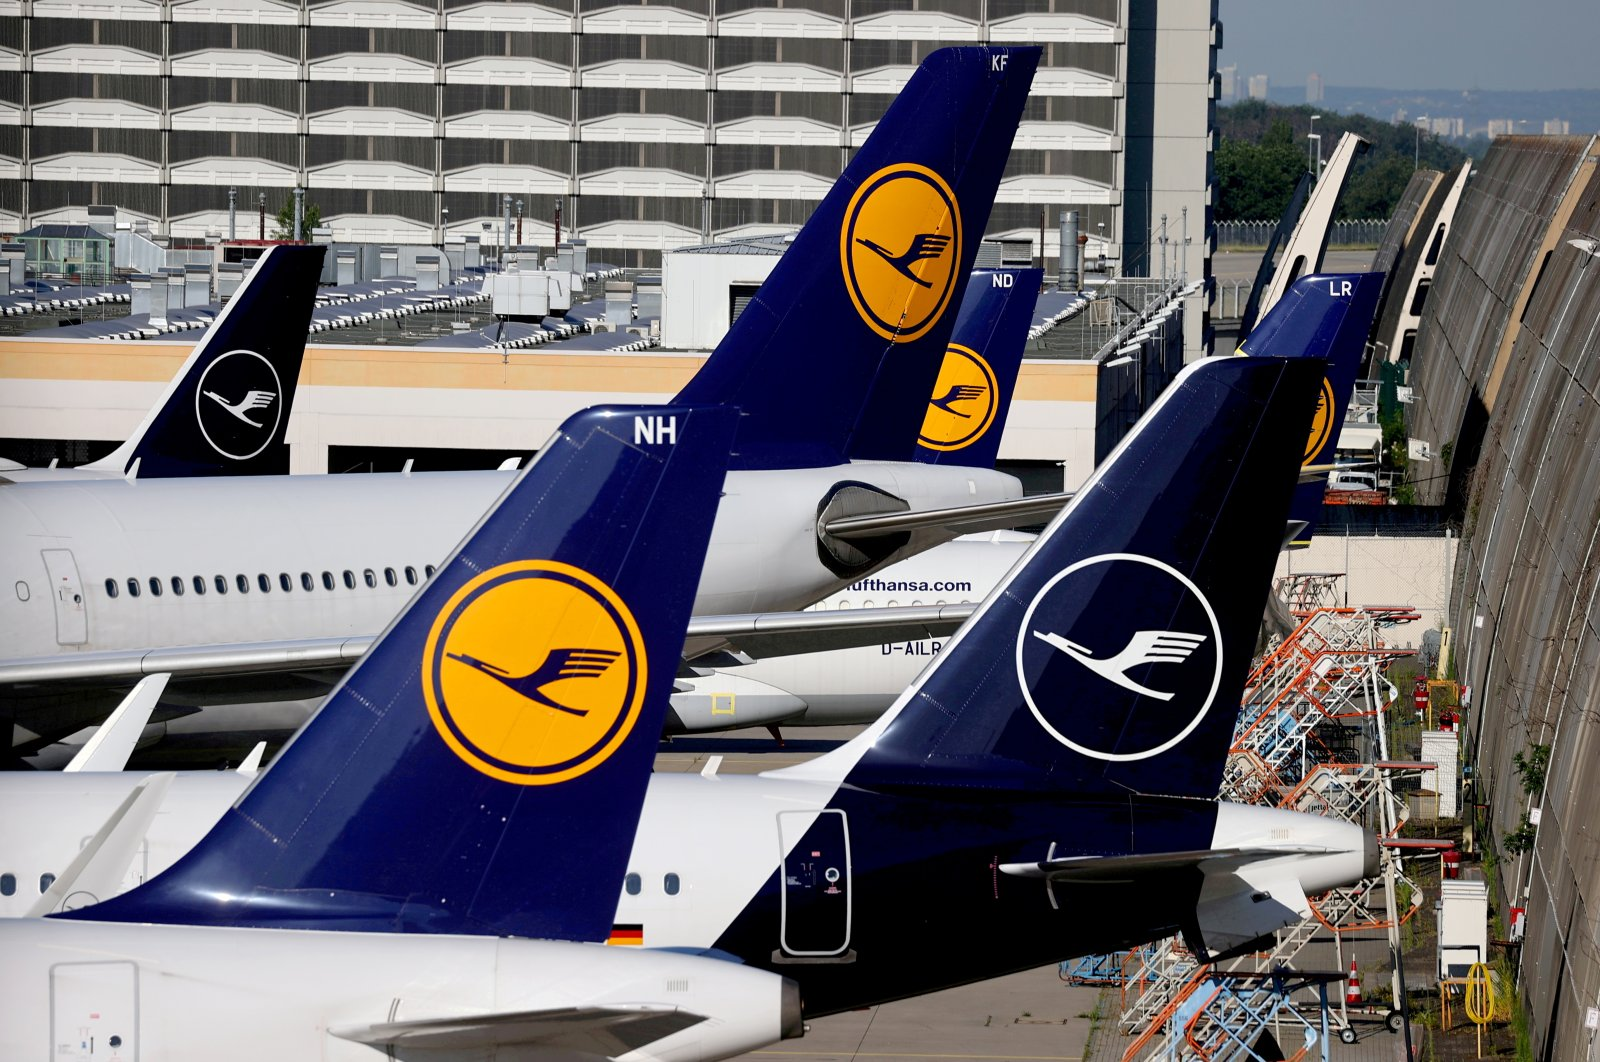 Lufthansa planes are seen parked on the tarmac of Frankfurt Airport, Germany, June 25, 2020. (Reuters Photo)